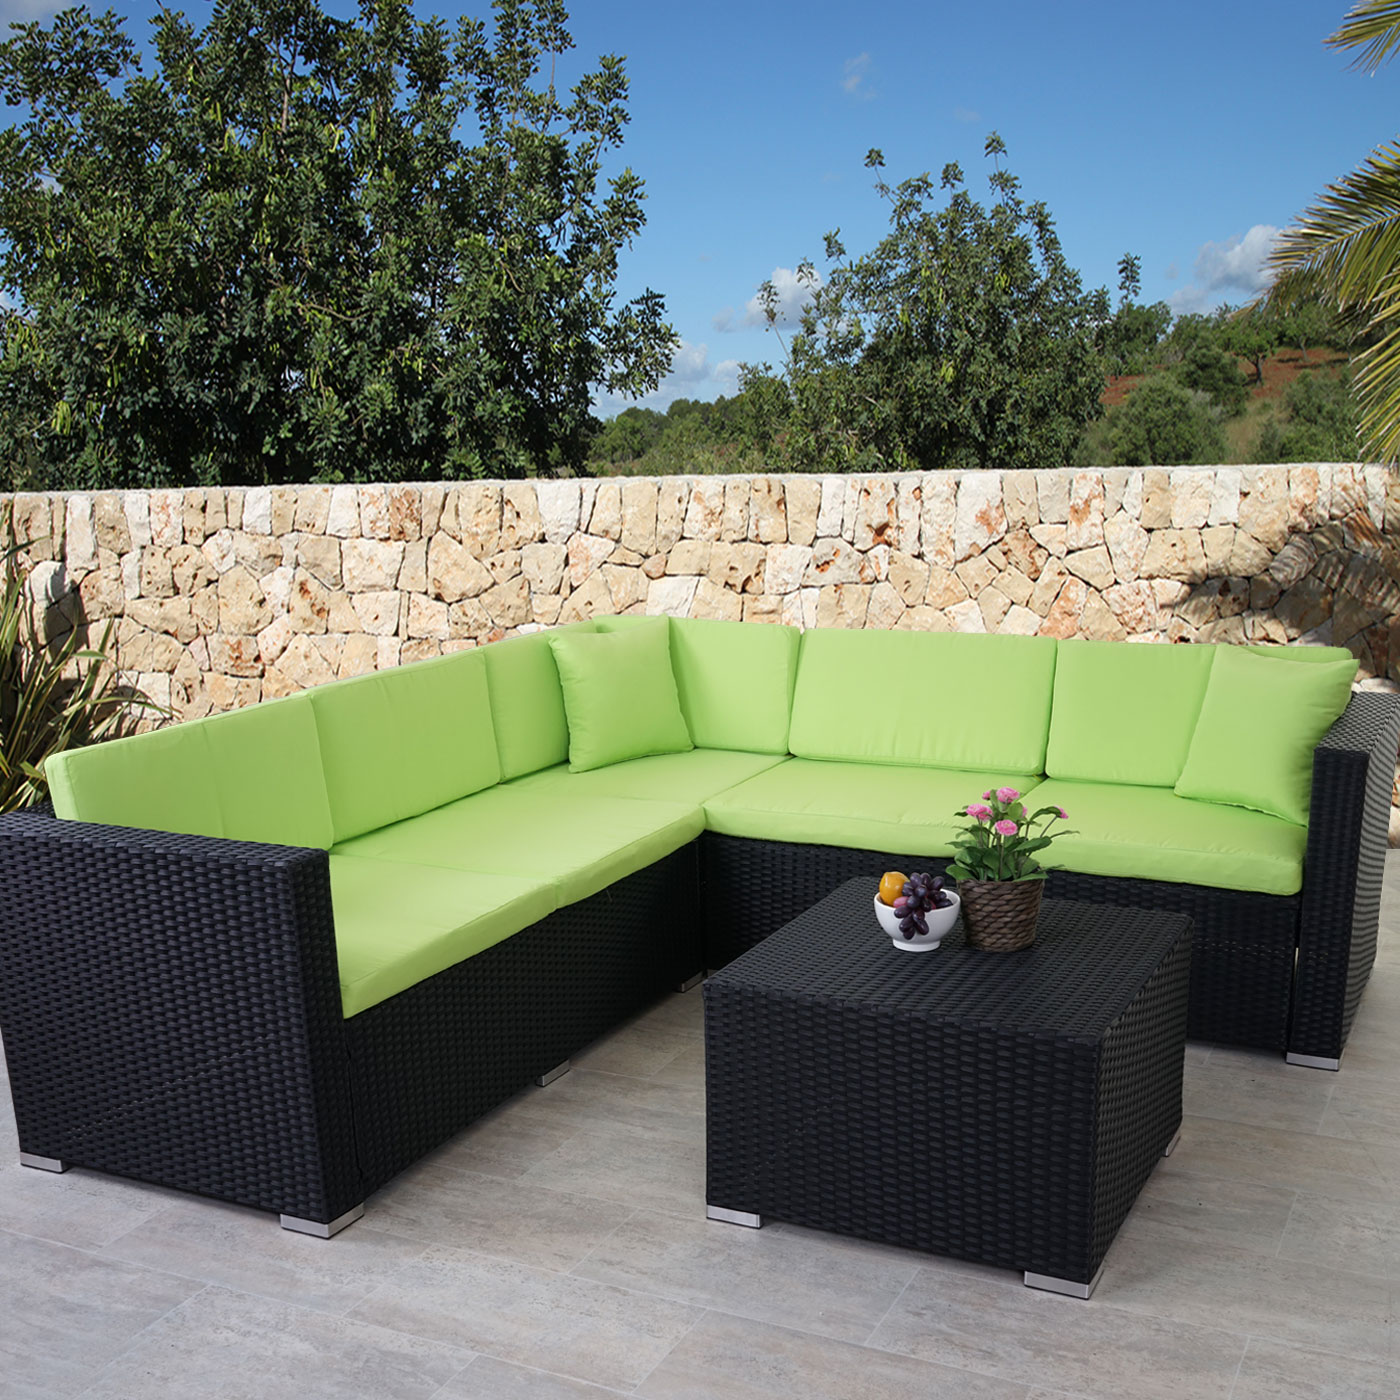 Rattan sofa outdoor for Sofa exterior